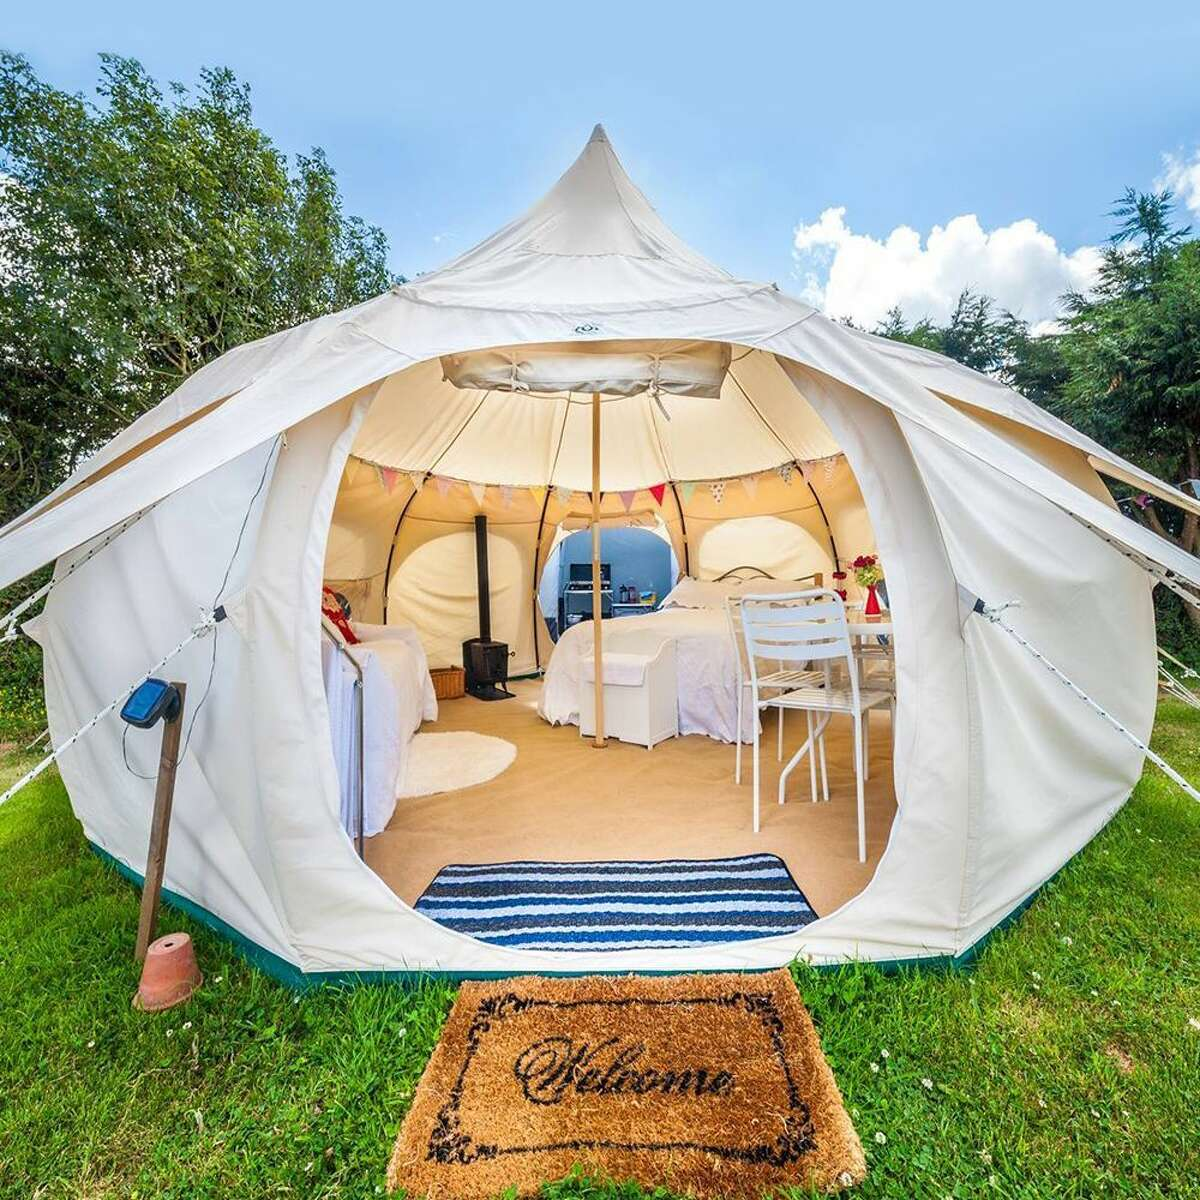 Outdoor Living Made Fancy With These 8 Glamping Tents